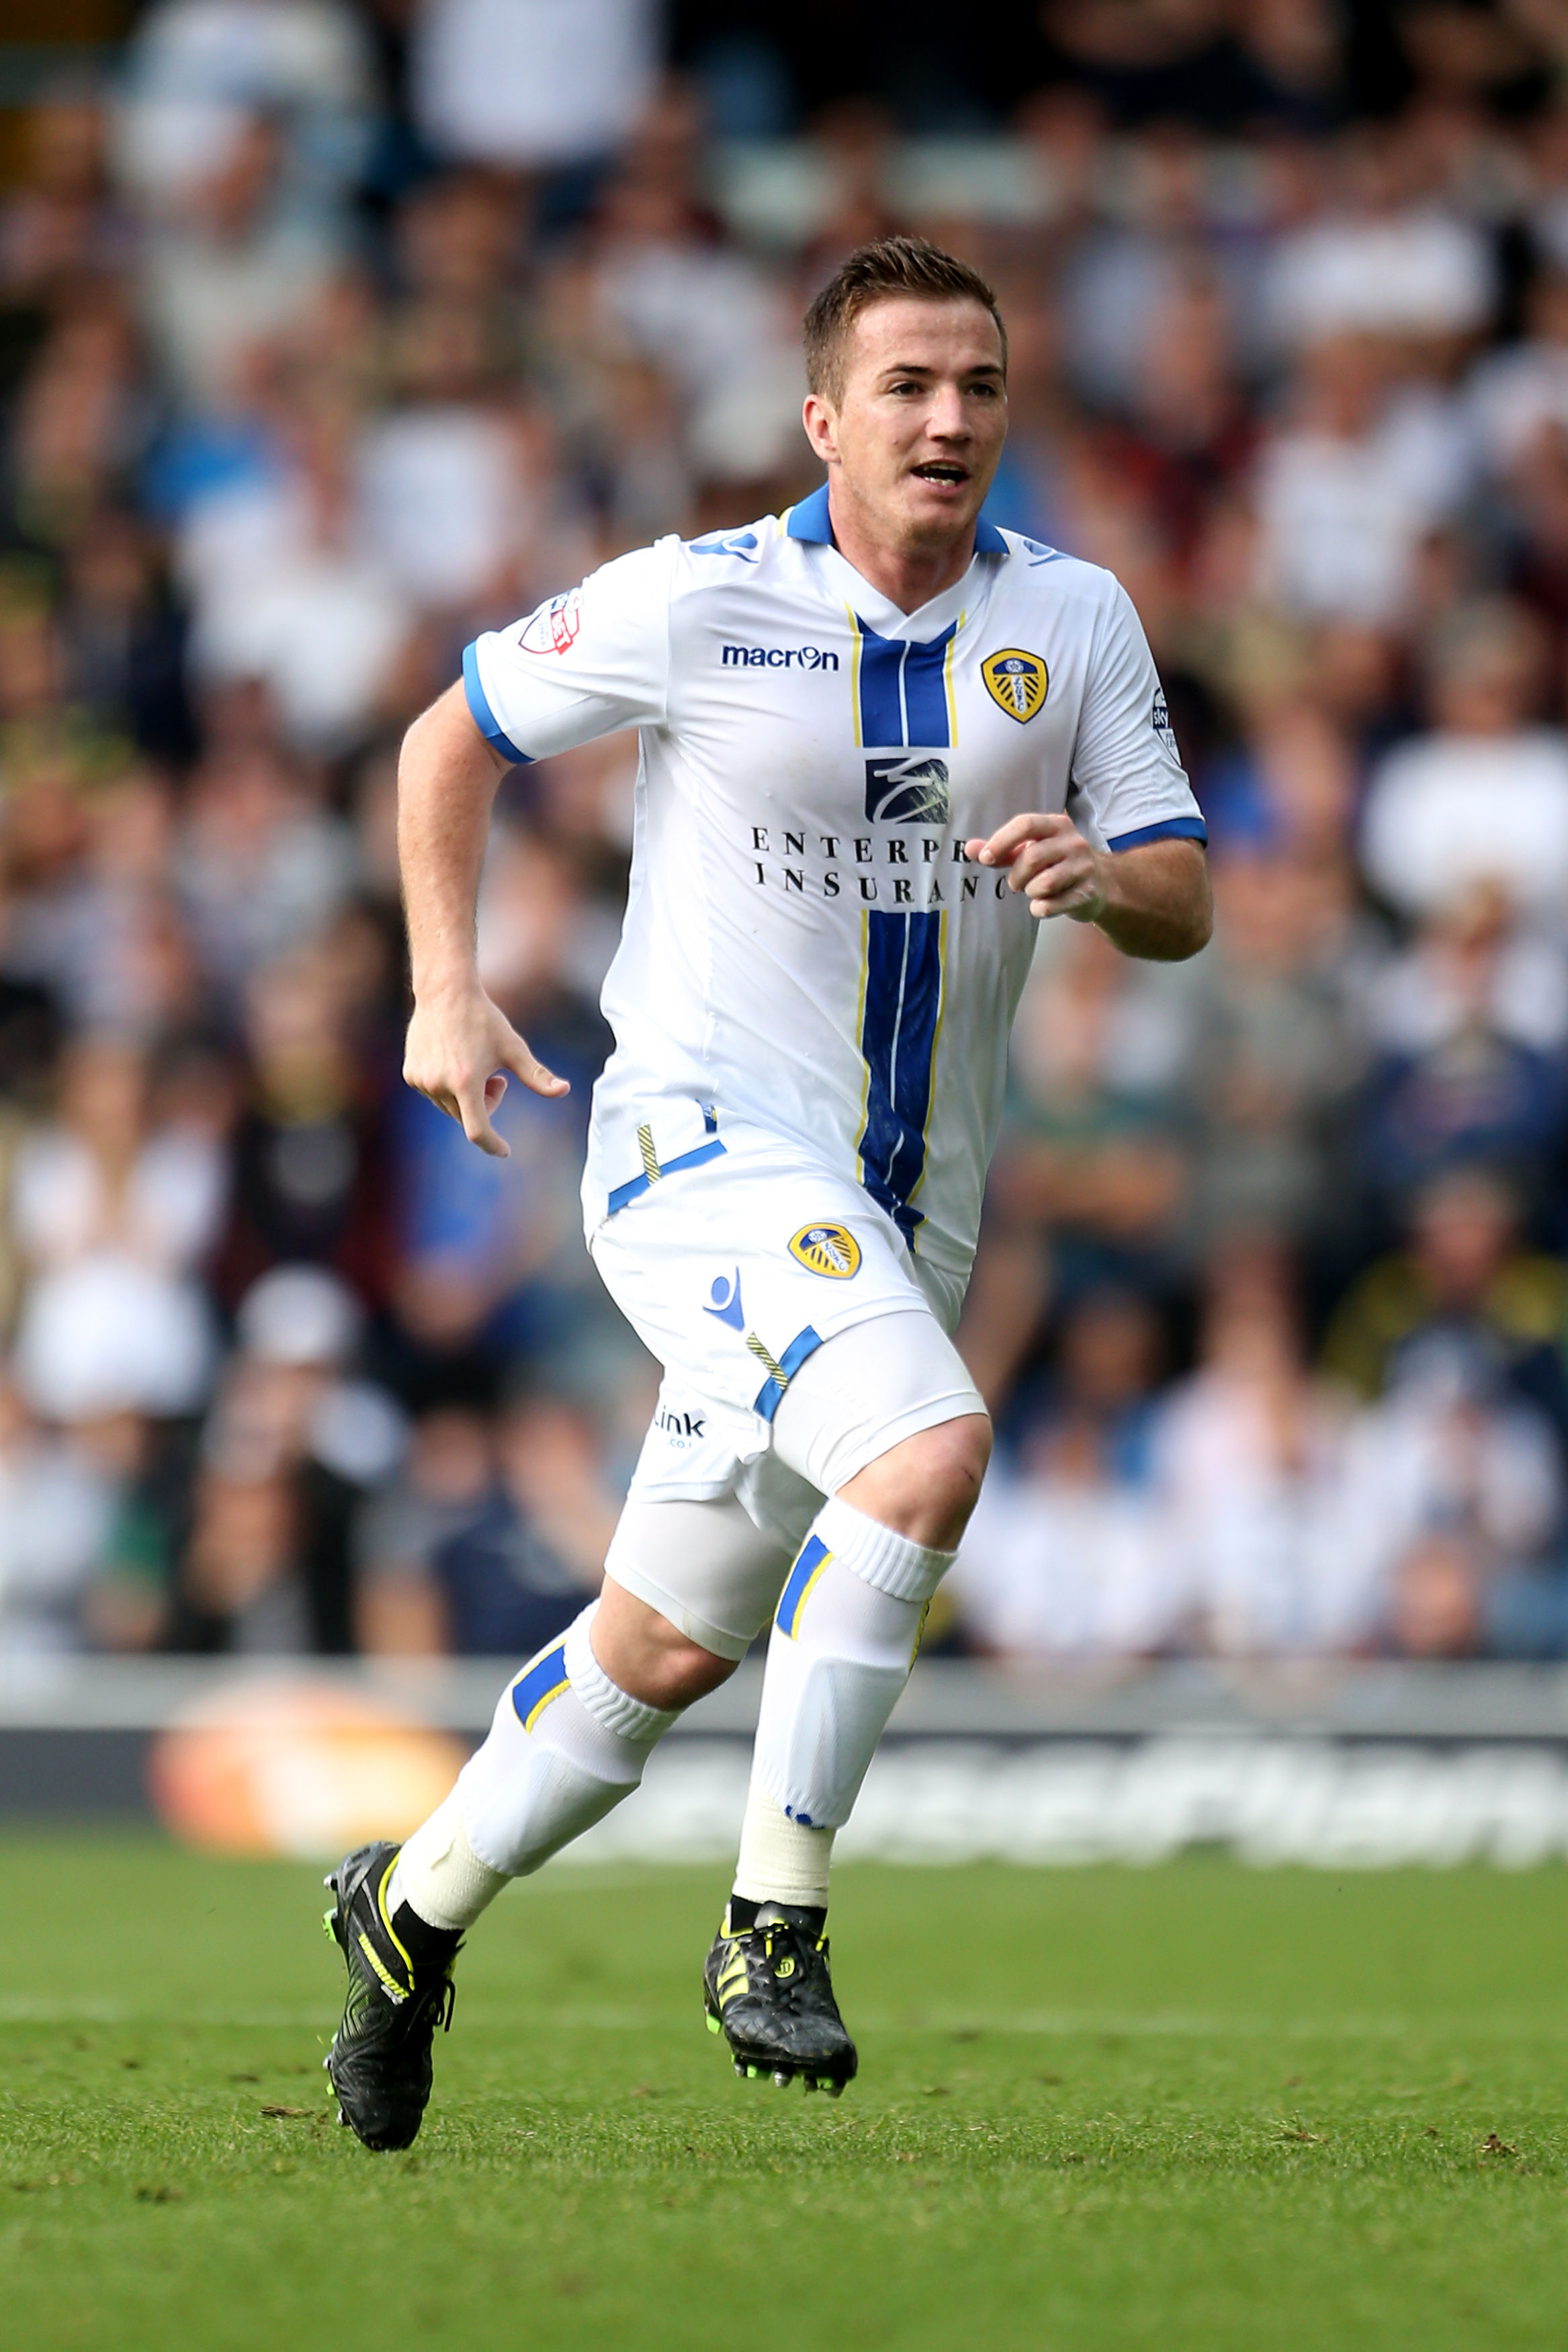 BIG-MONEY MOVE: Ross McCormack has completed an £11m move from Leeds United to Fulham